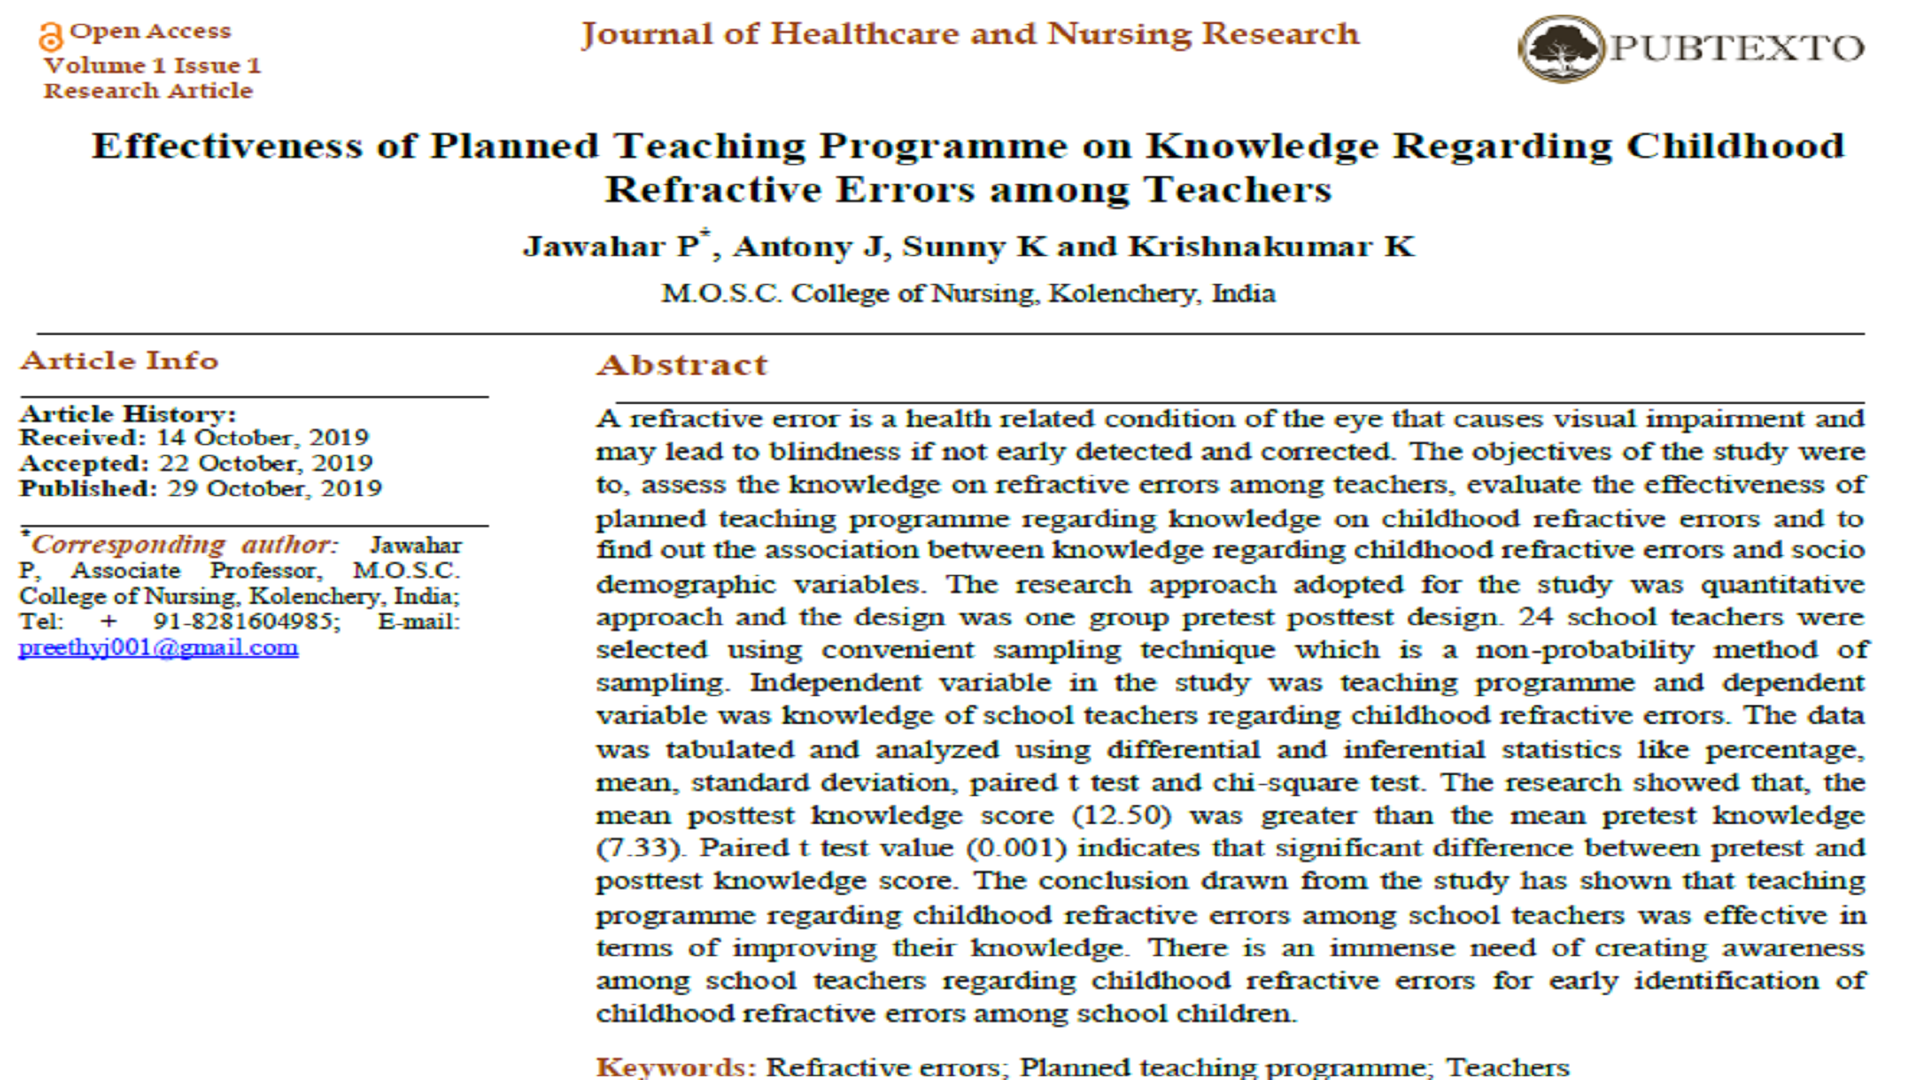 Effectiveness of Planned Teaching Programme on Knowledge Regarding Childhood Refractive Errors among Teachers